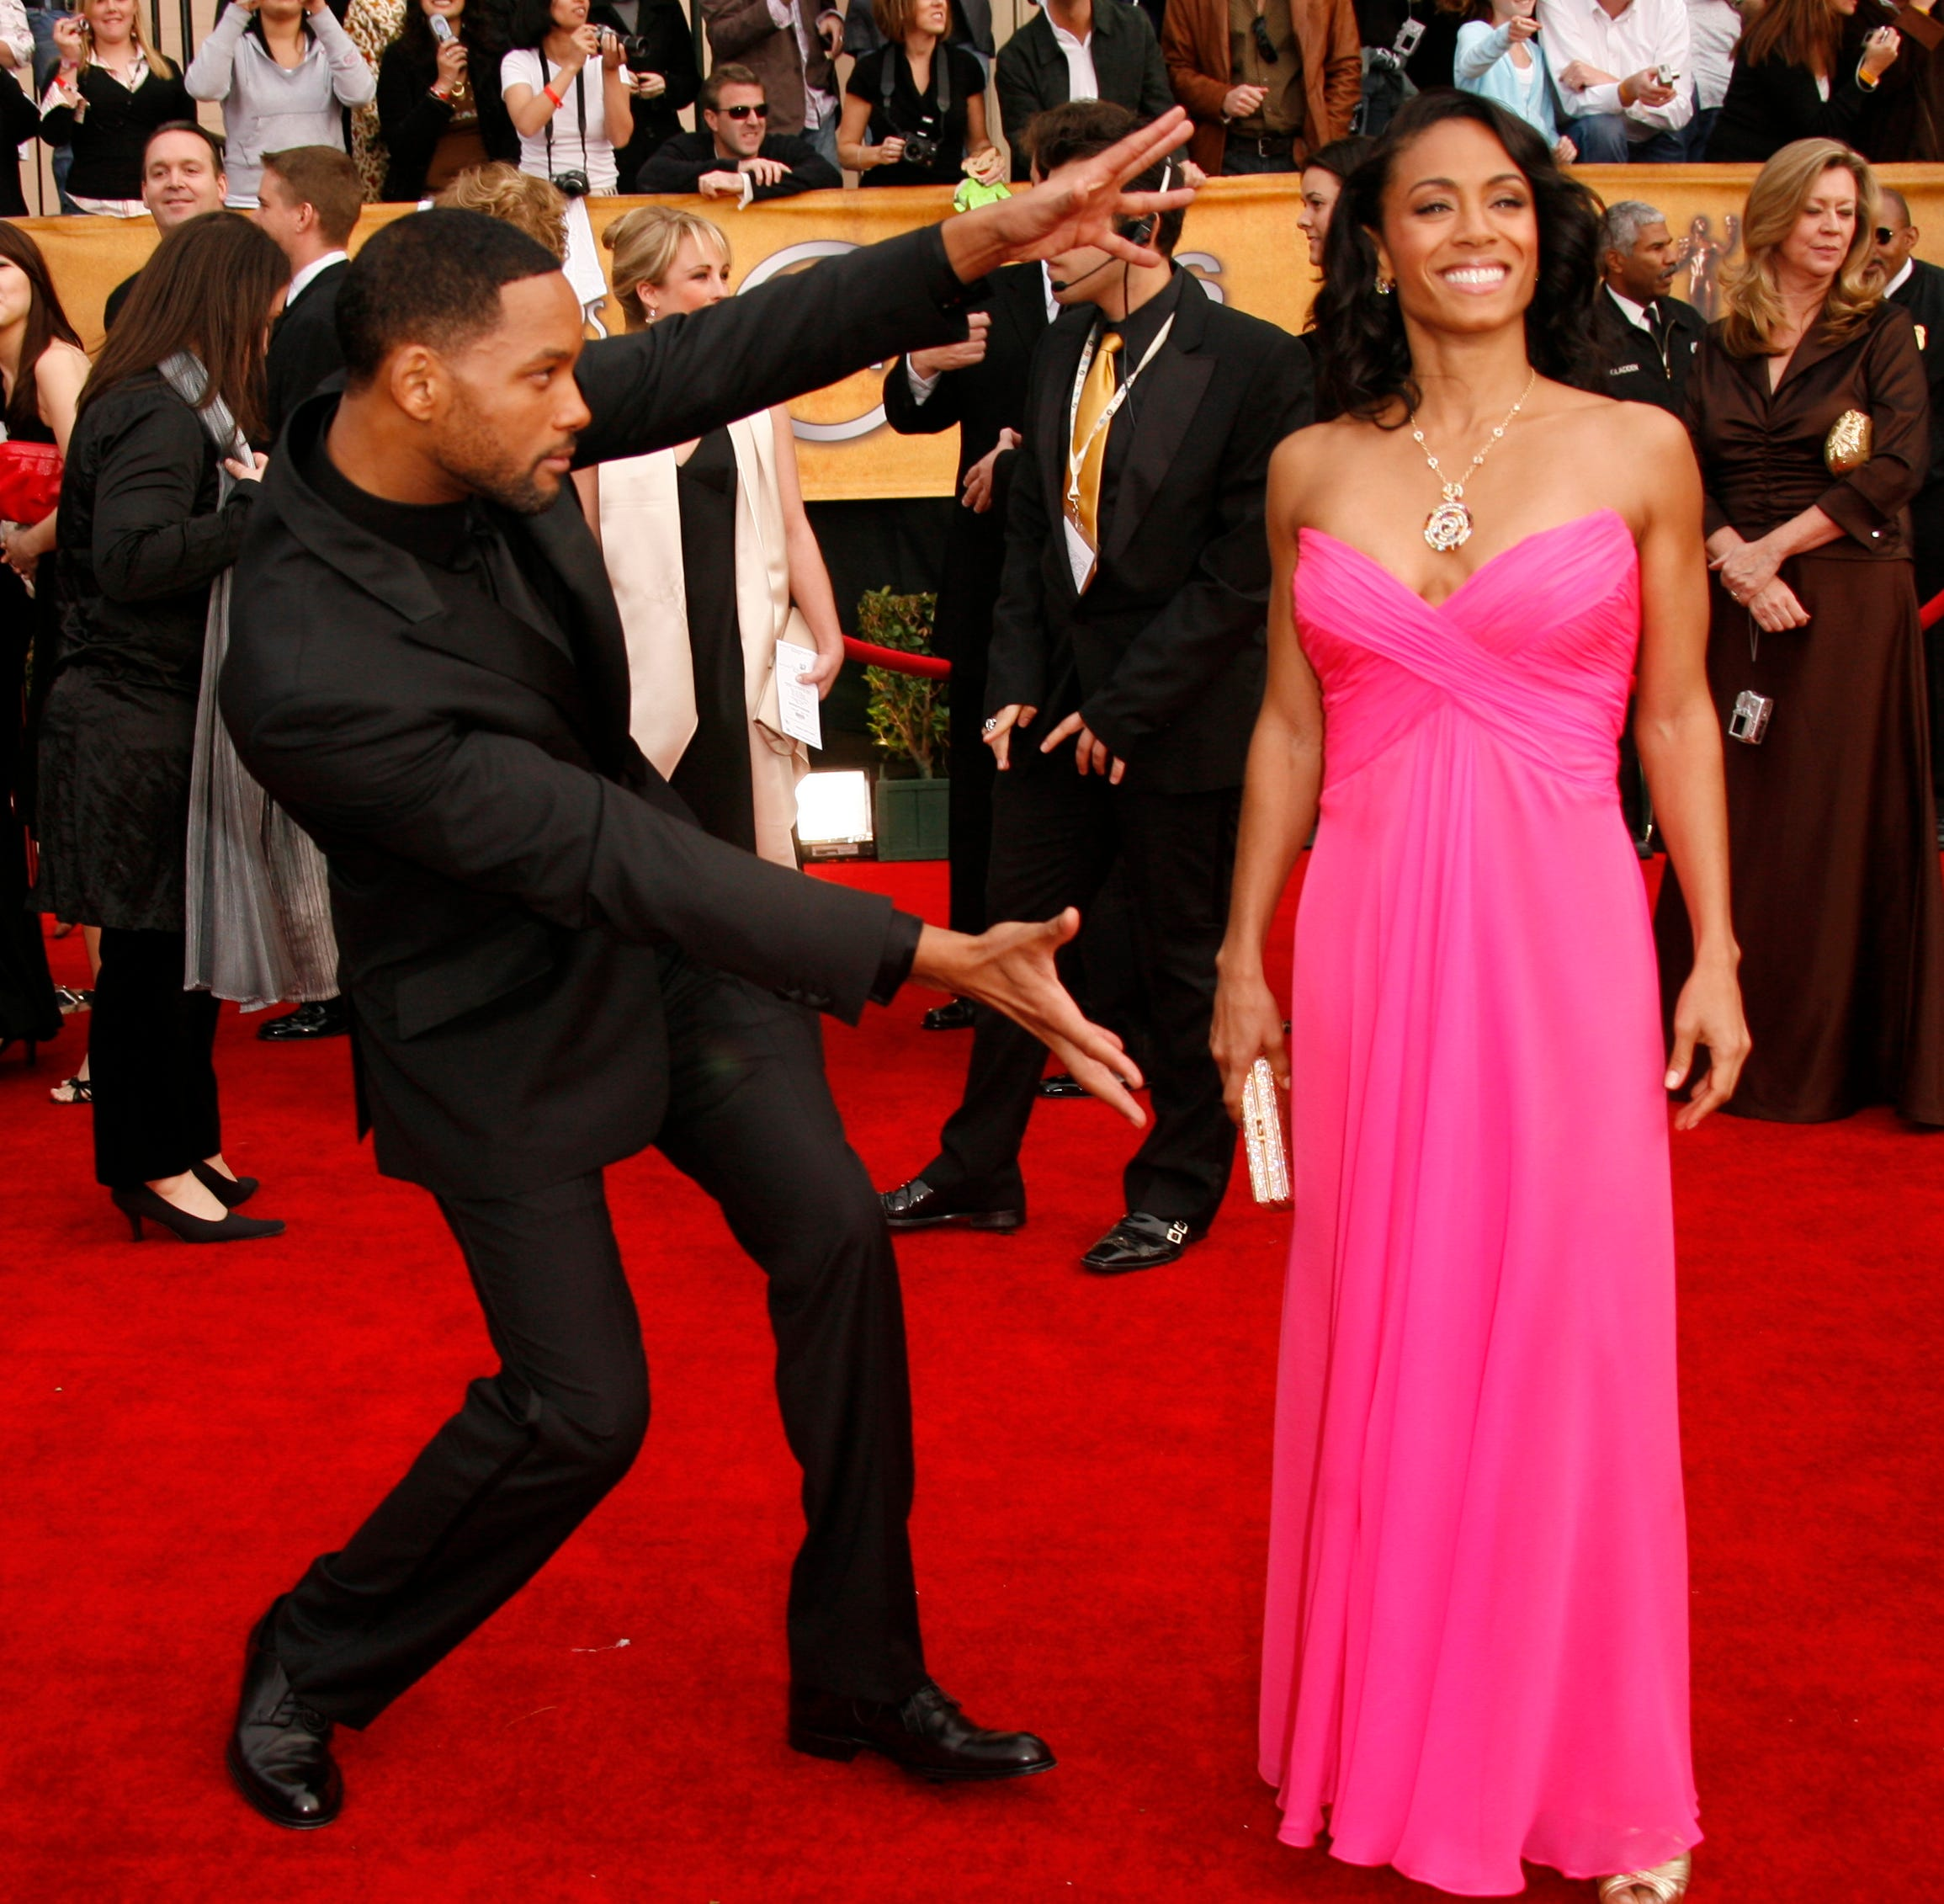 Will Smith and wife Jada Pinkett Smith pose for photographers at he 13th annual Screen Actors Guild Awards show at the Shrine Exposition Center in Los Angeles on Jan. 28, 2007.